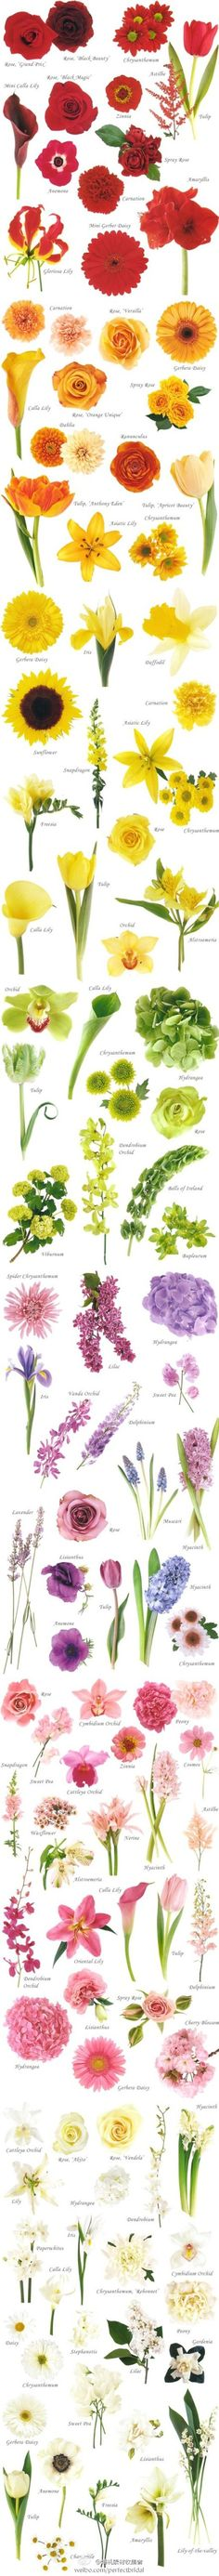 Flowers by color! Click to see more flower resources from Extension.